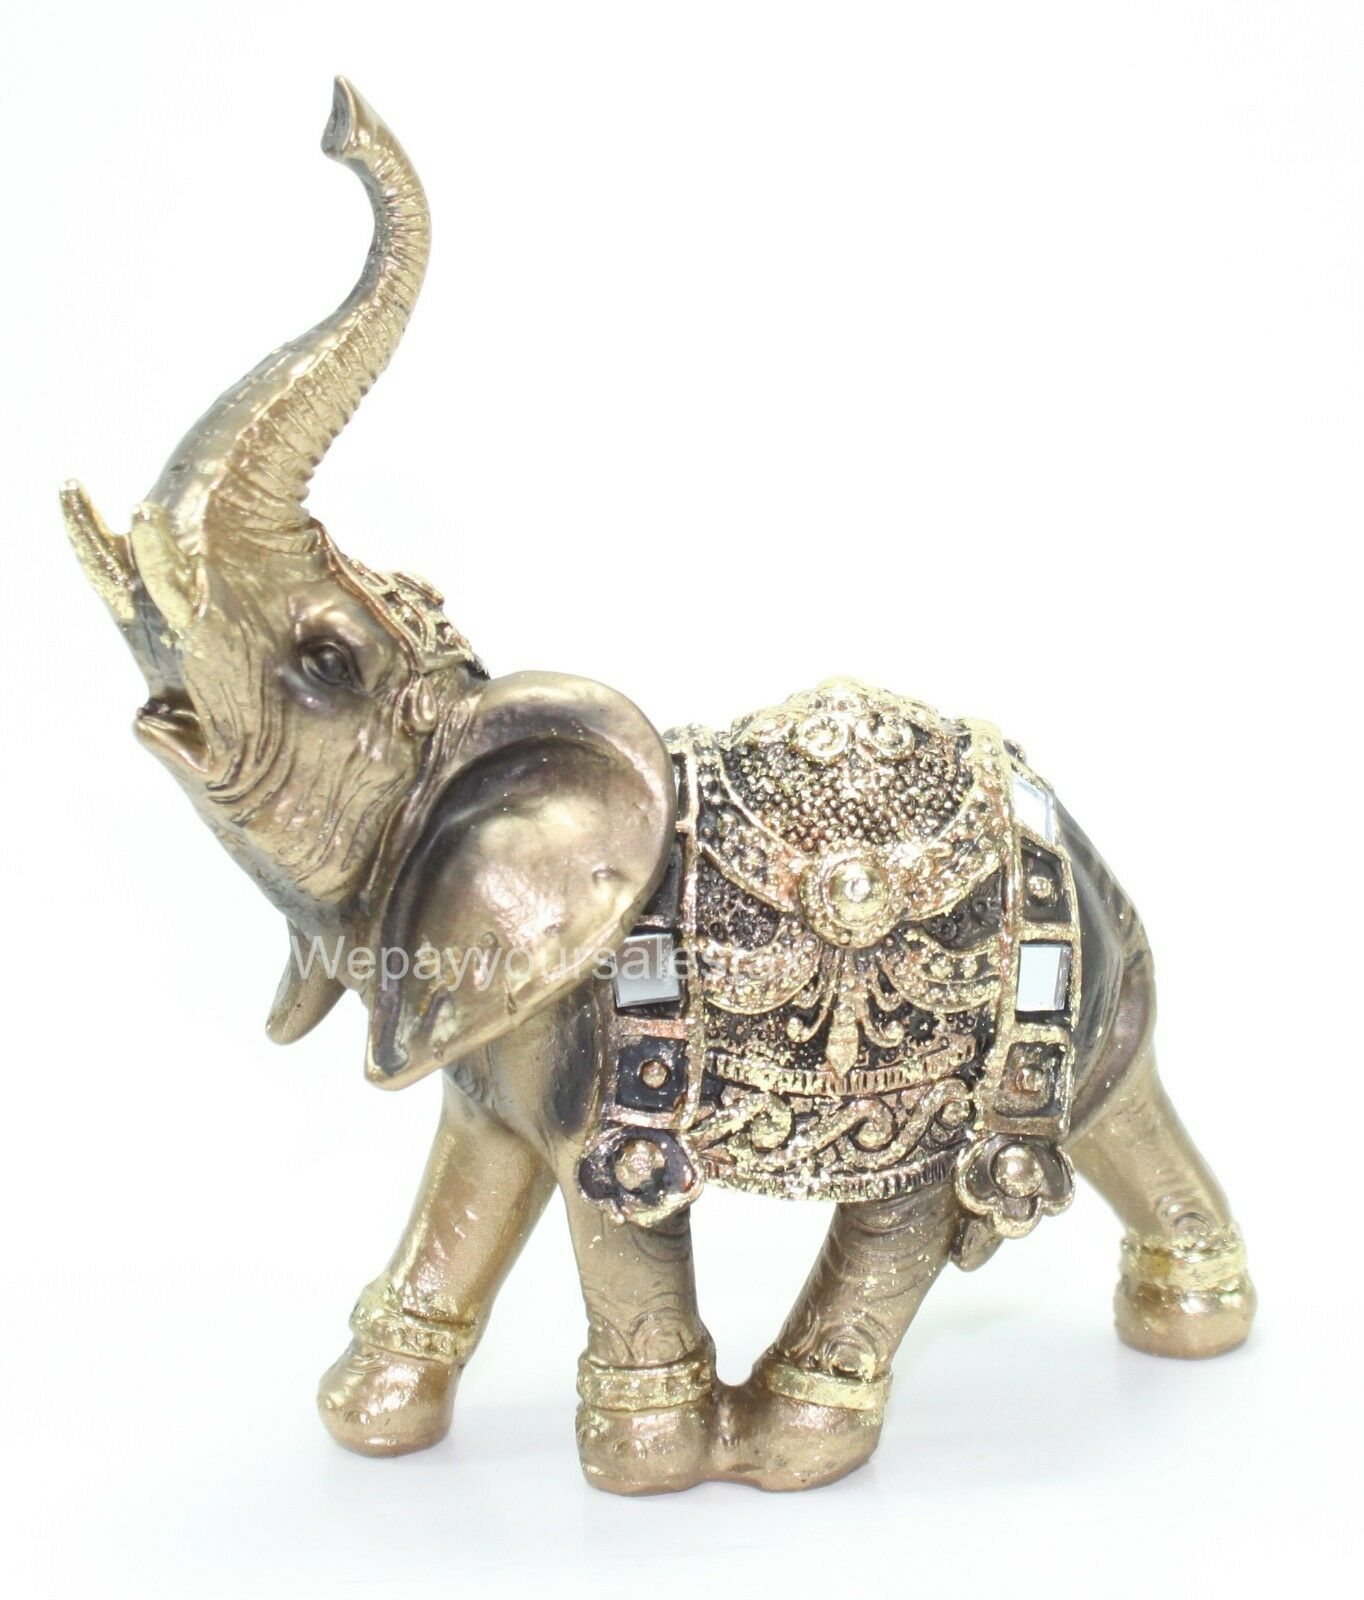 feng shui 4 5 elephant trunk statue wealth lucky figurine gift home decor ebay. Black Bedroom Furniture Sets. Home Design Ideas